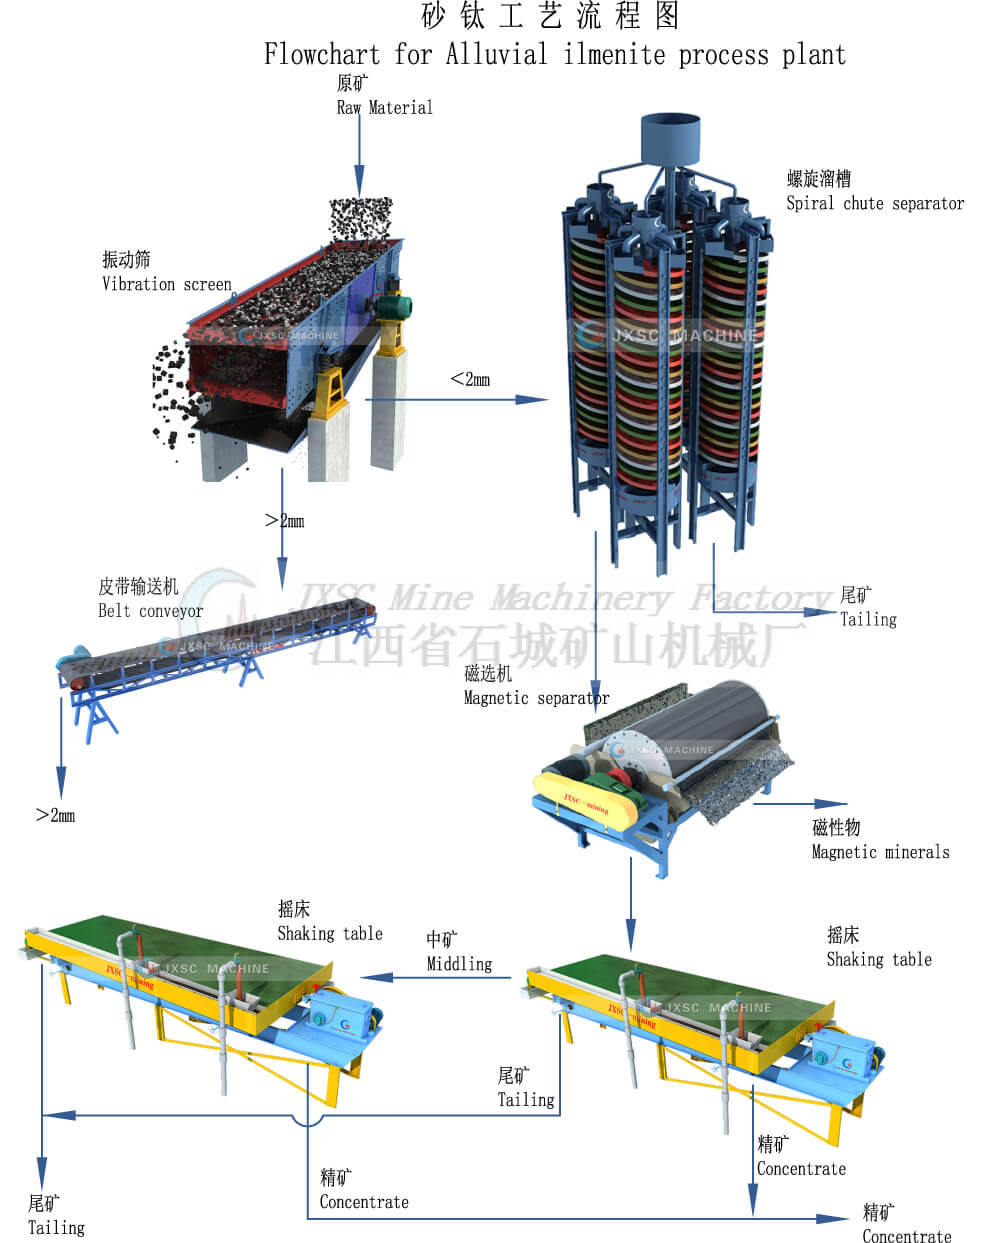 Alluvial ilmenite process plant